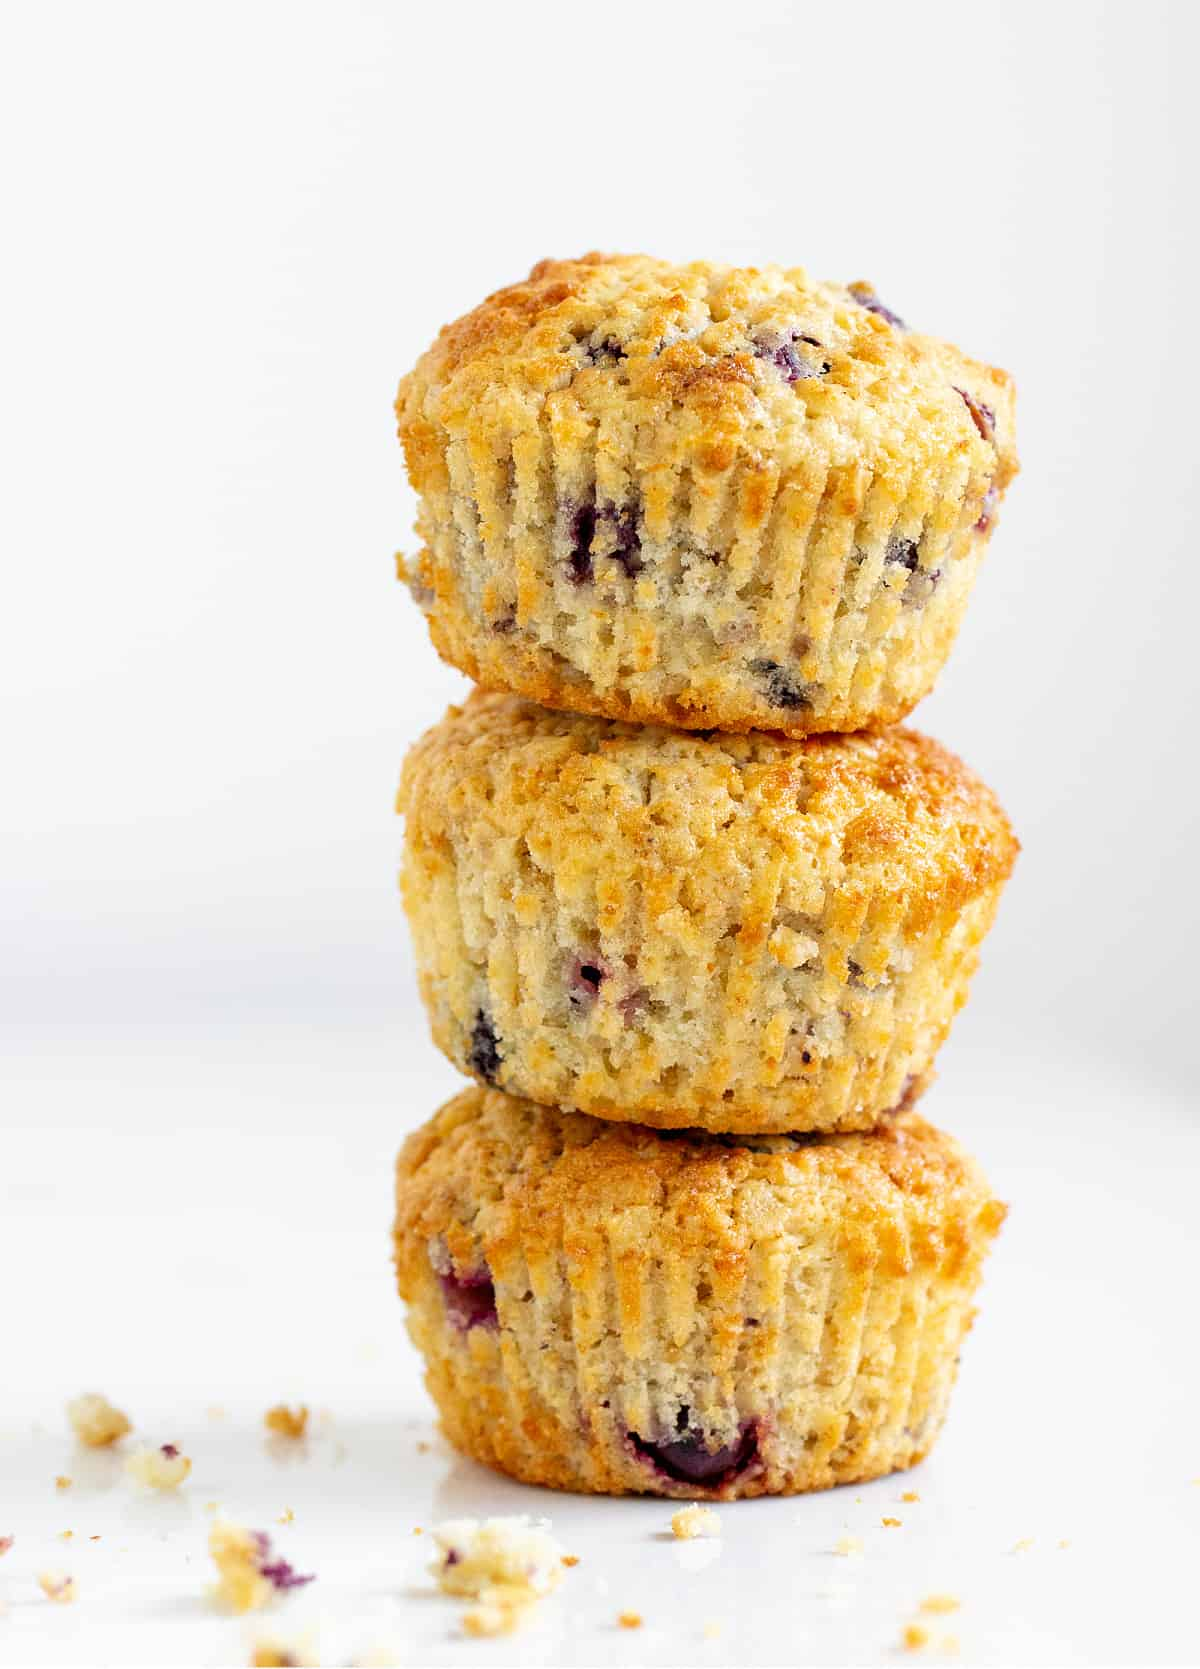 Stack of three golden colored muffins with blueberries, white background, some crumbs